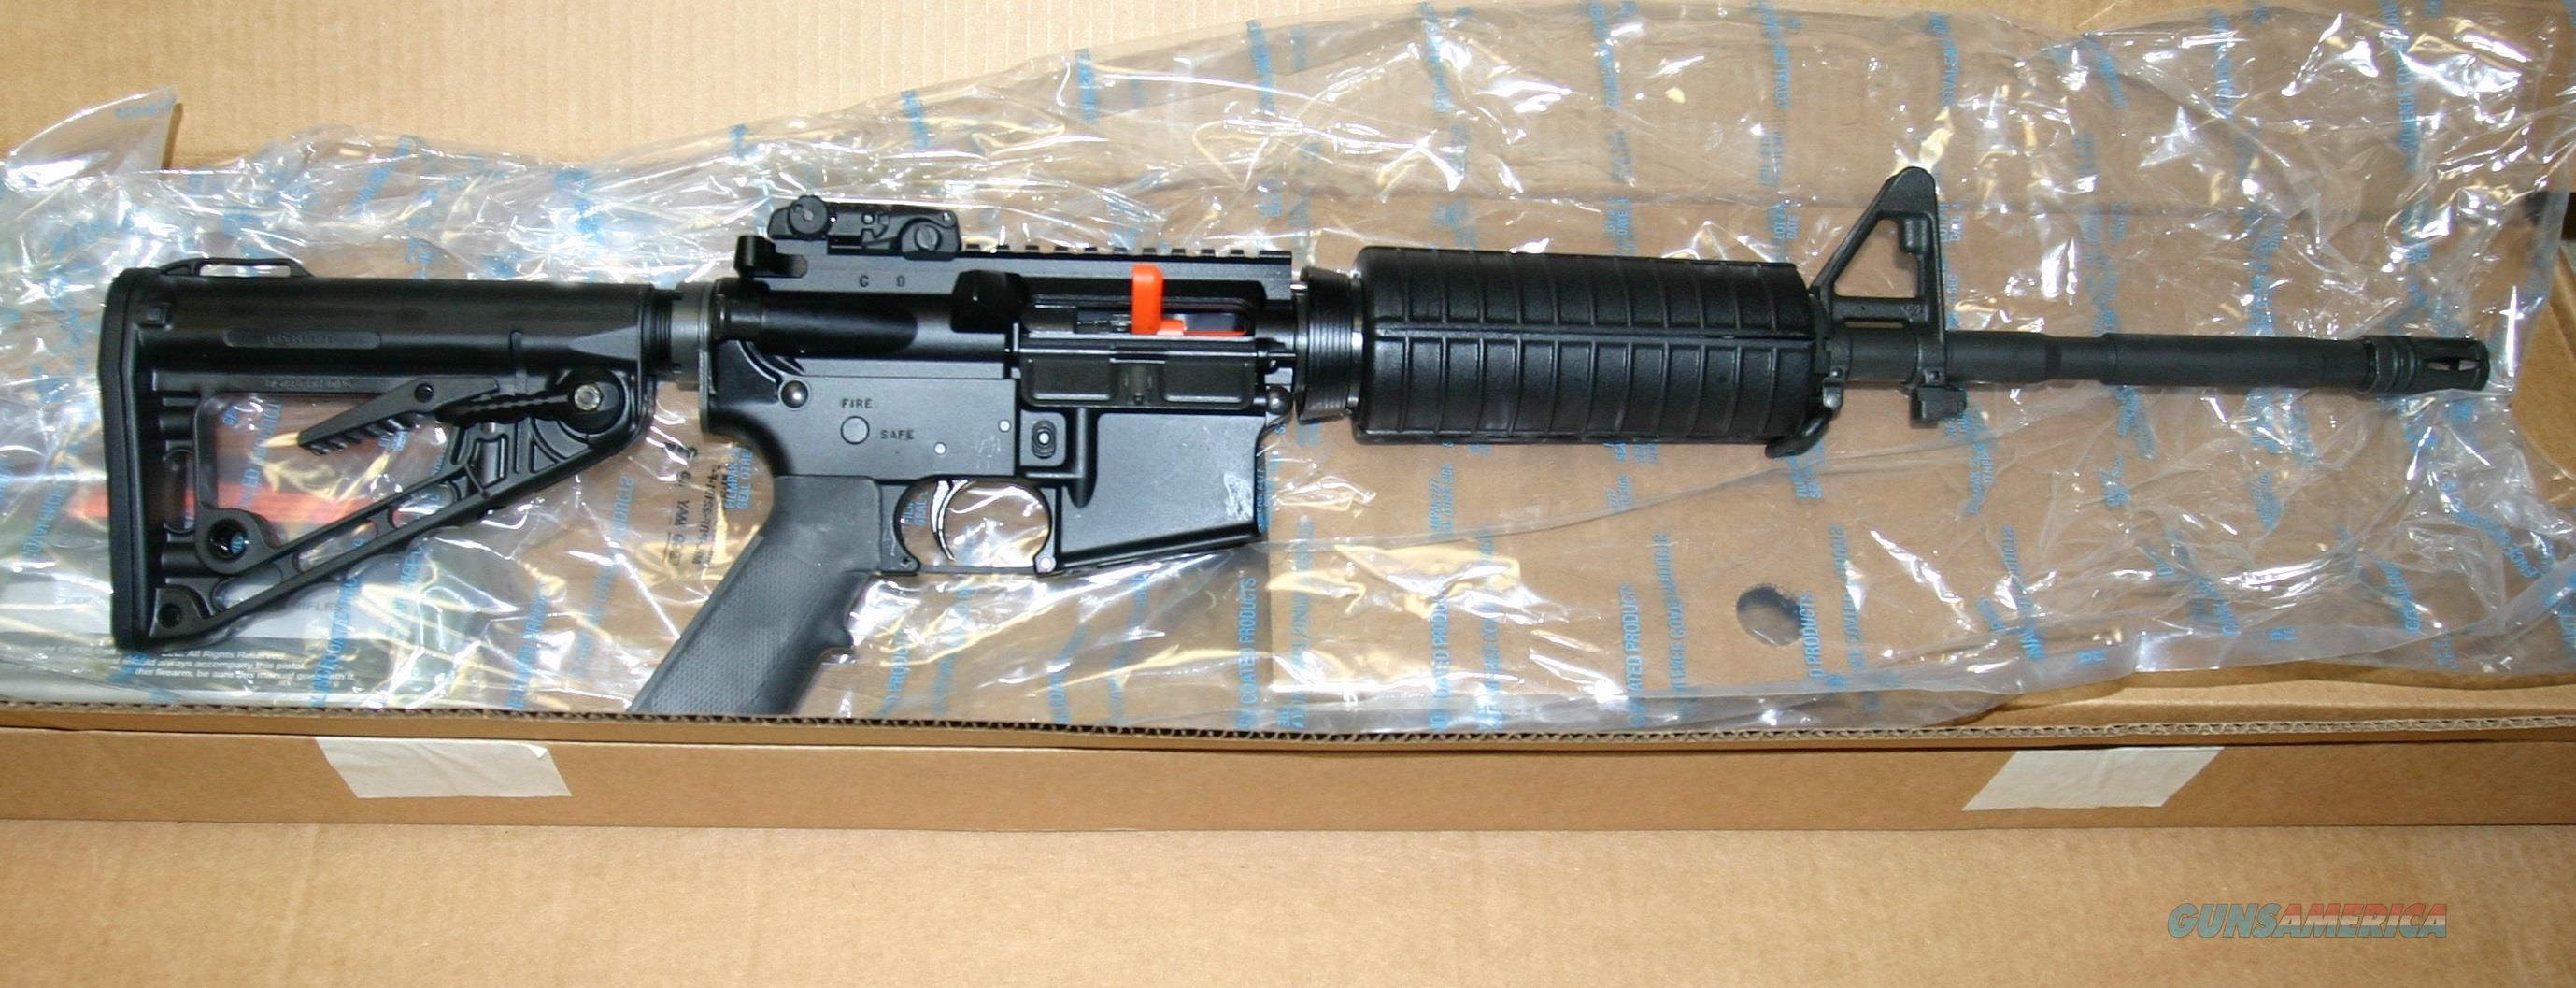 COLT LE6920 2013 config. AR15  M4 A3 .223   Guns > Rifles > Colt Military/Tactical Rifles